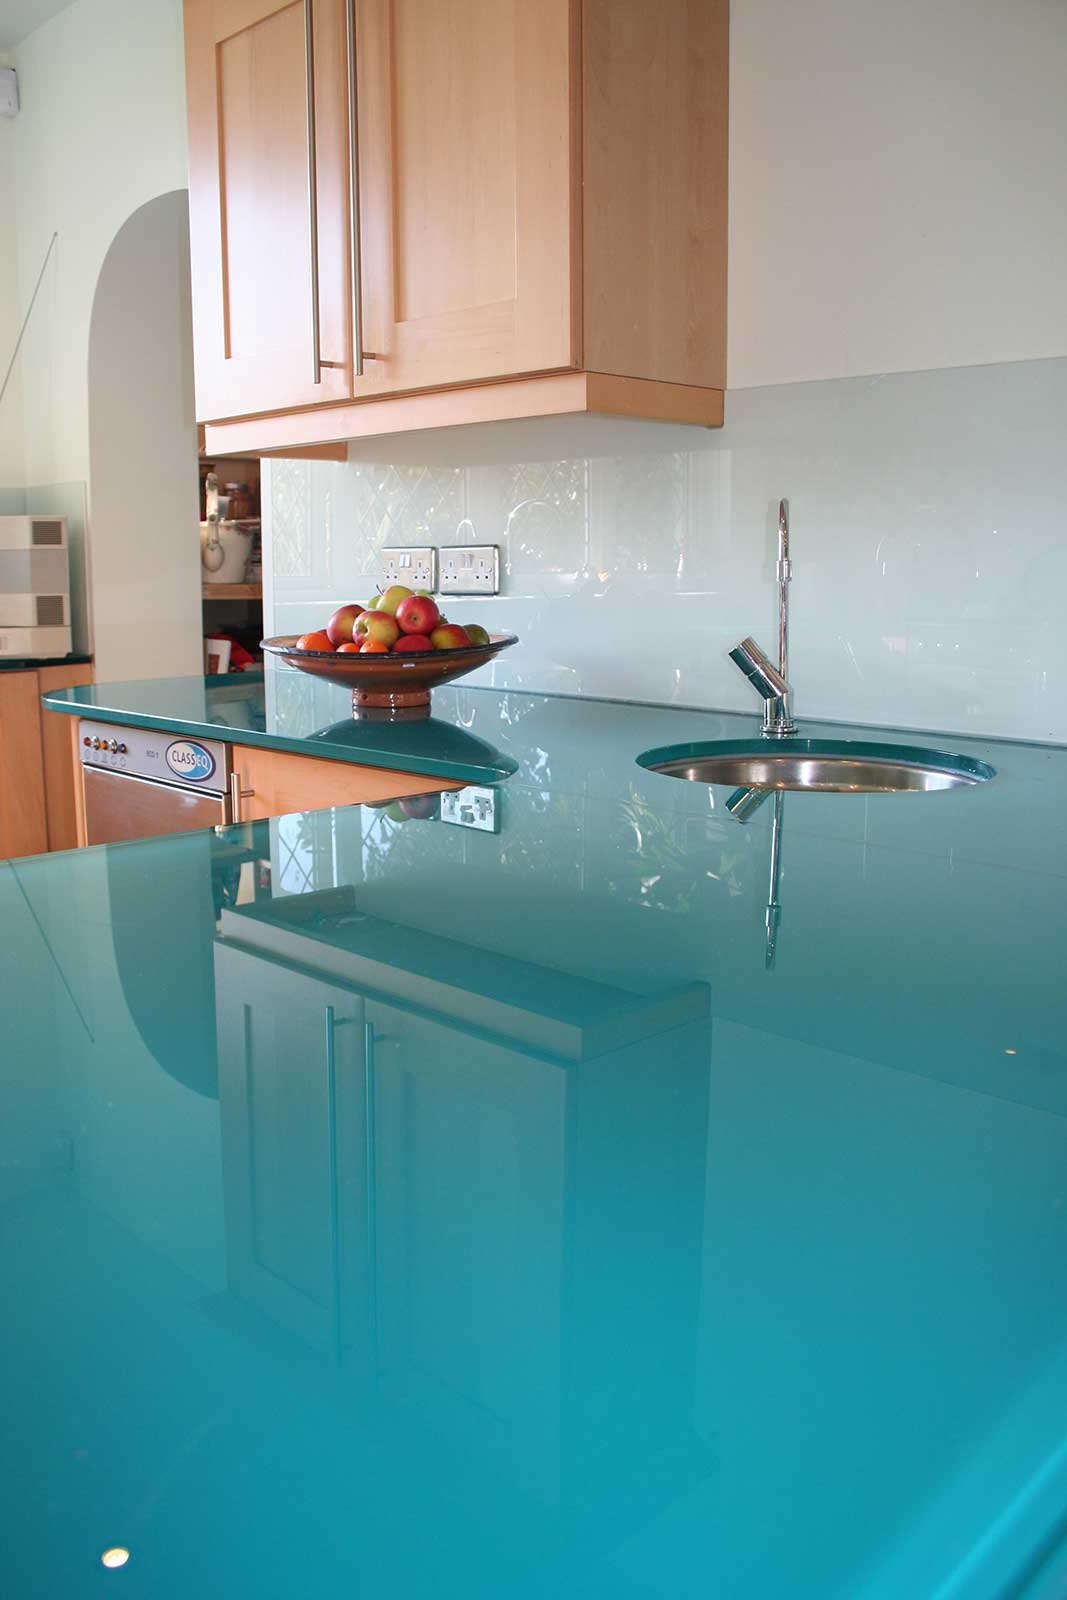 Bespoke Coloured Glass Worktop with Sink Cutout